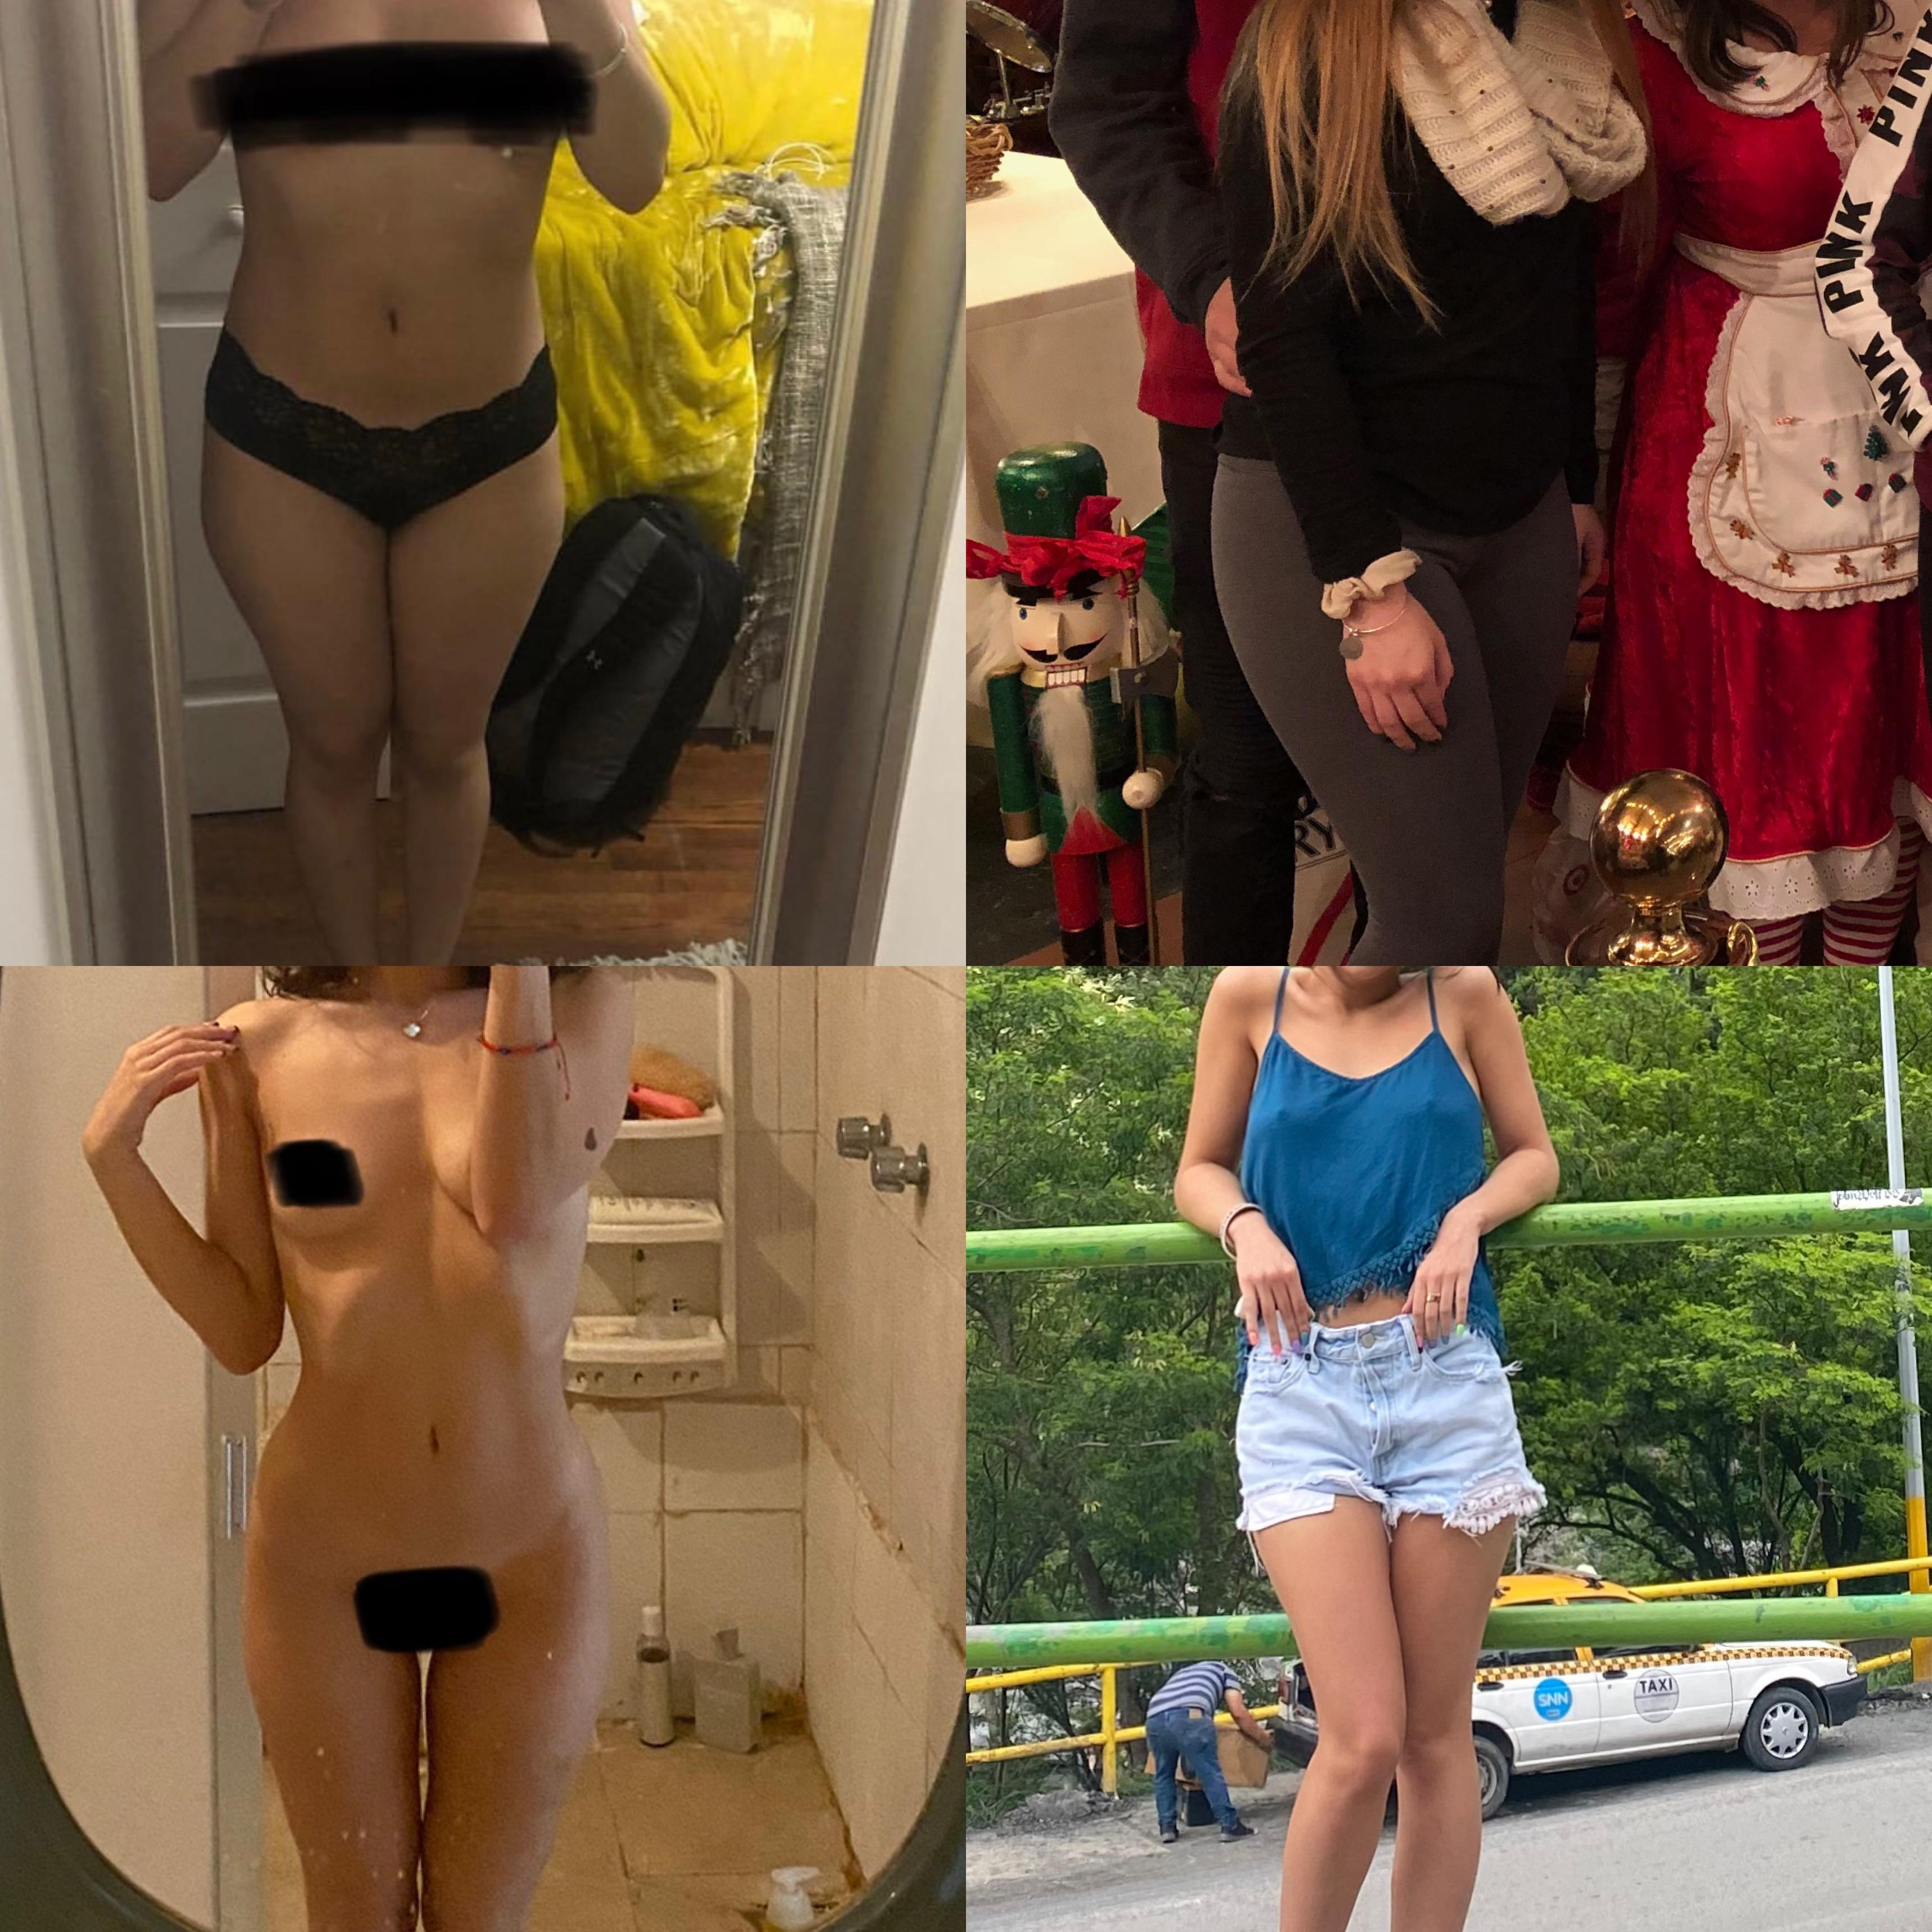 5 foot 4 Female Before and After 32 lbs Fat Loss 135 lbs to 103 lbs